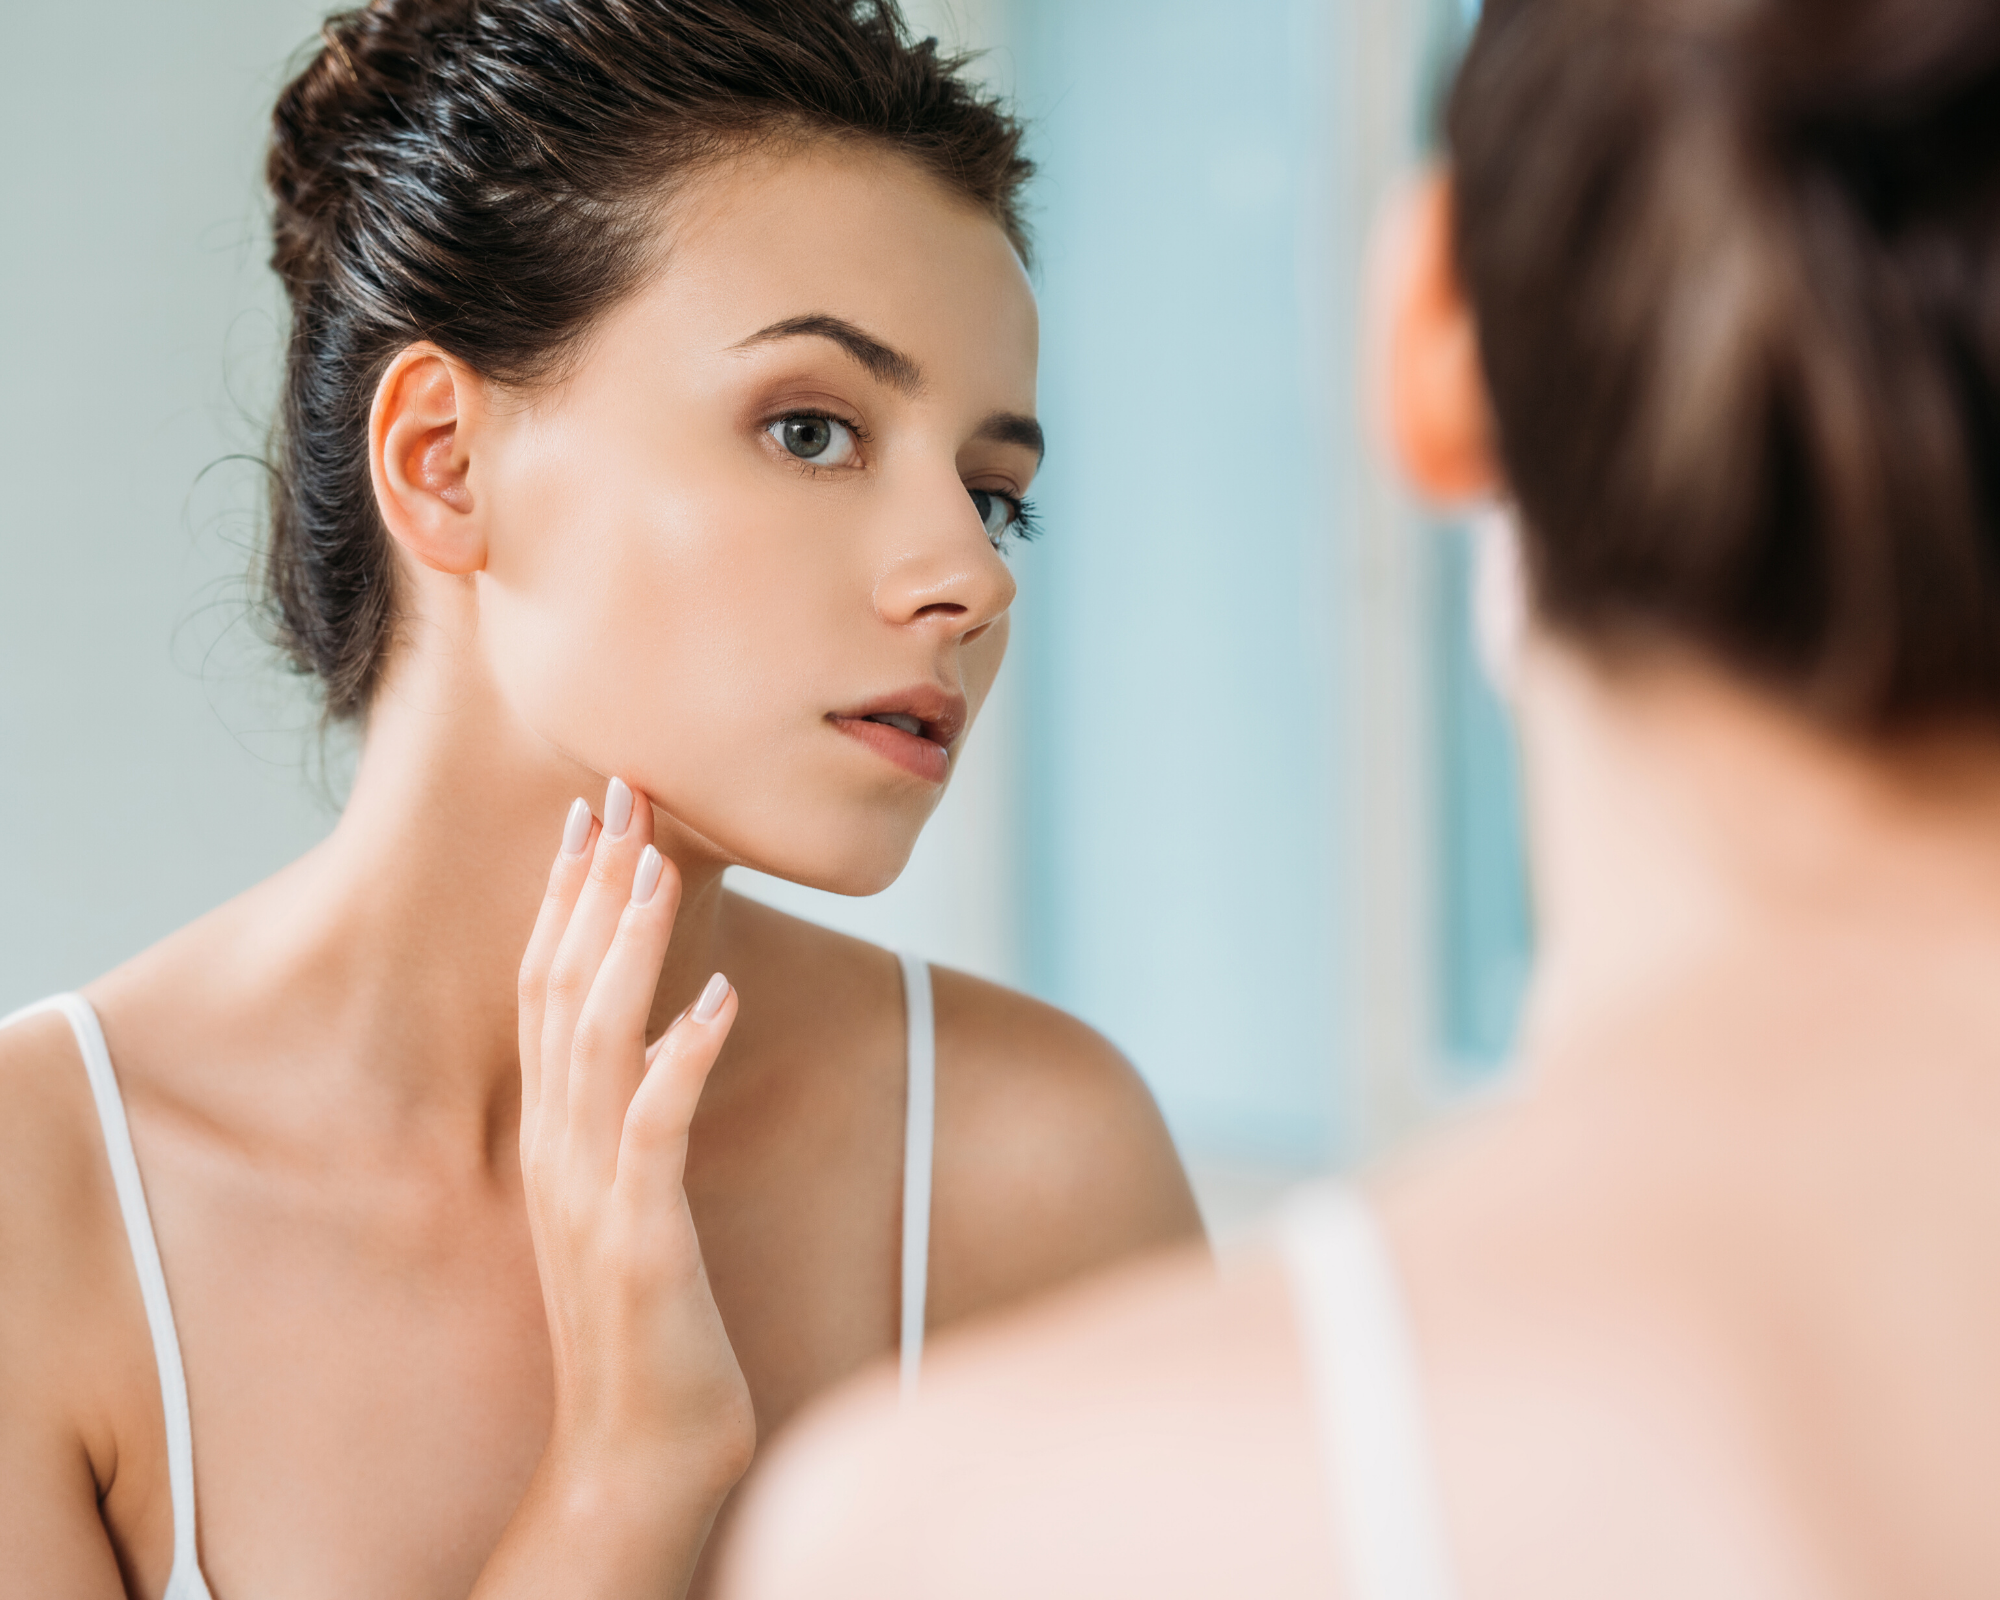 woman looking in mirror touching face